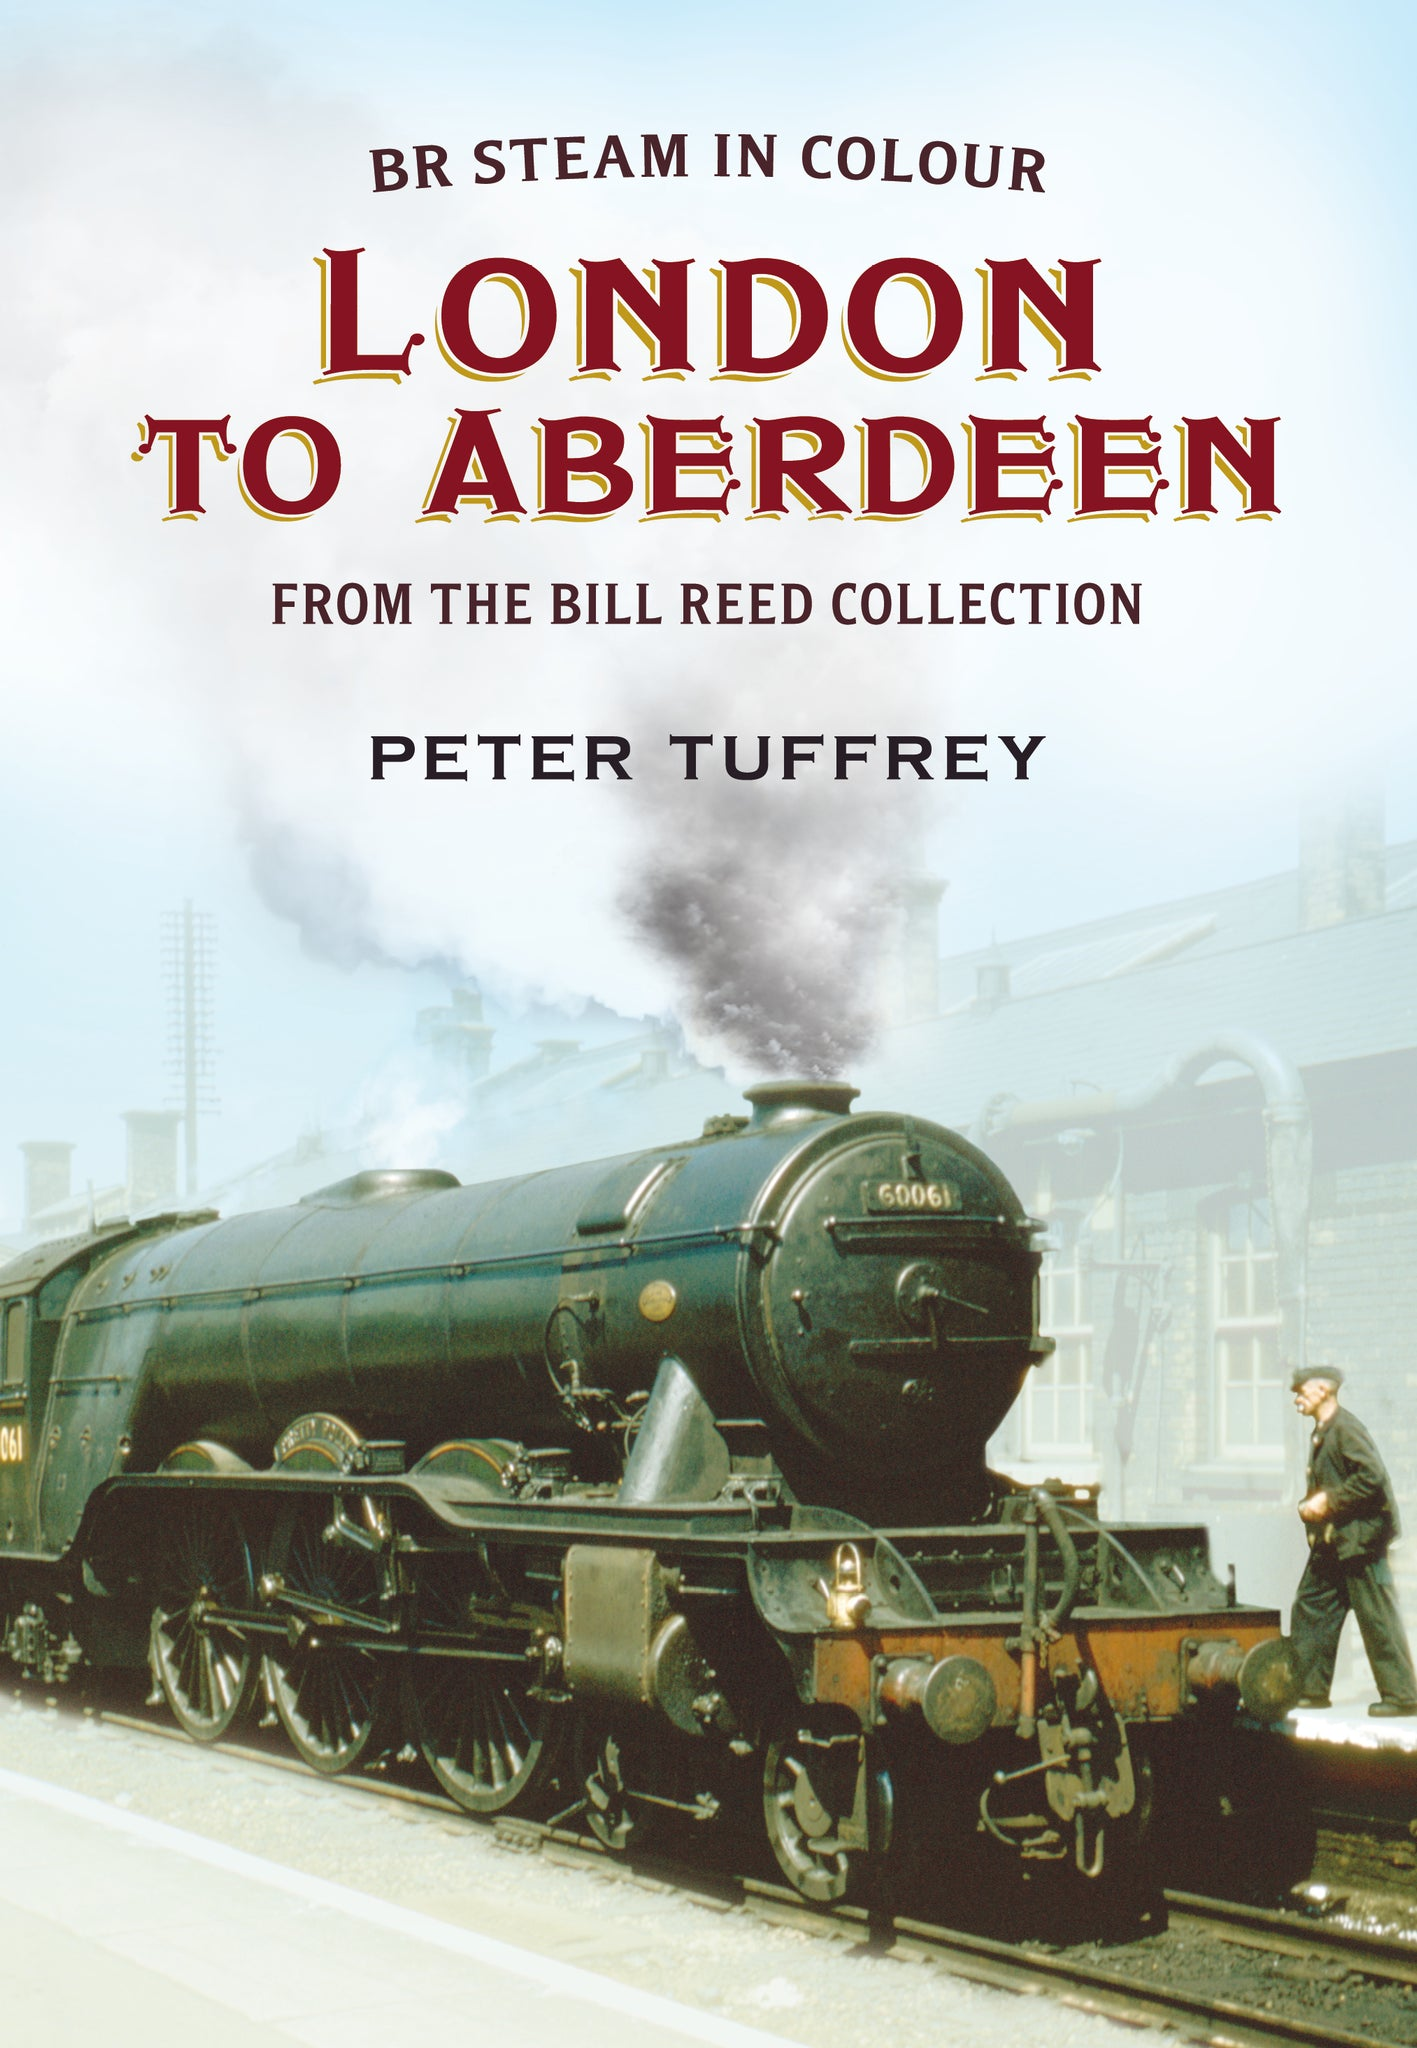 BR Steam in Colour: London to Aberdeen from the Bill Reed Collection - published by Fonthill Media